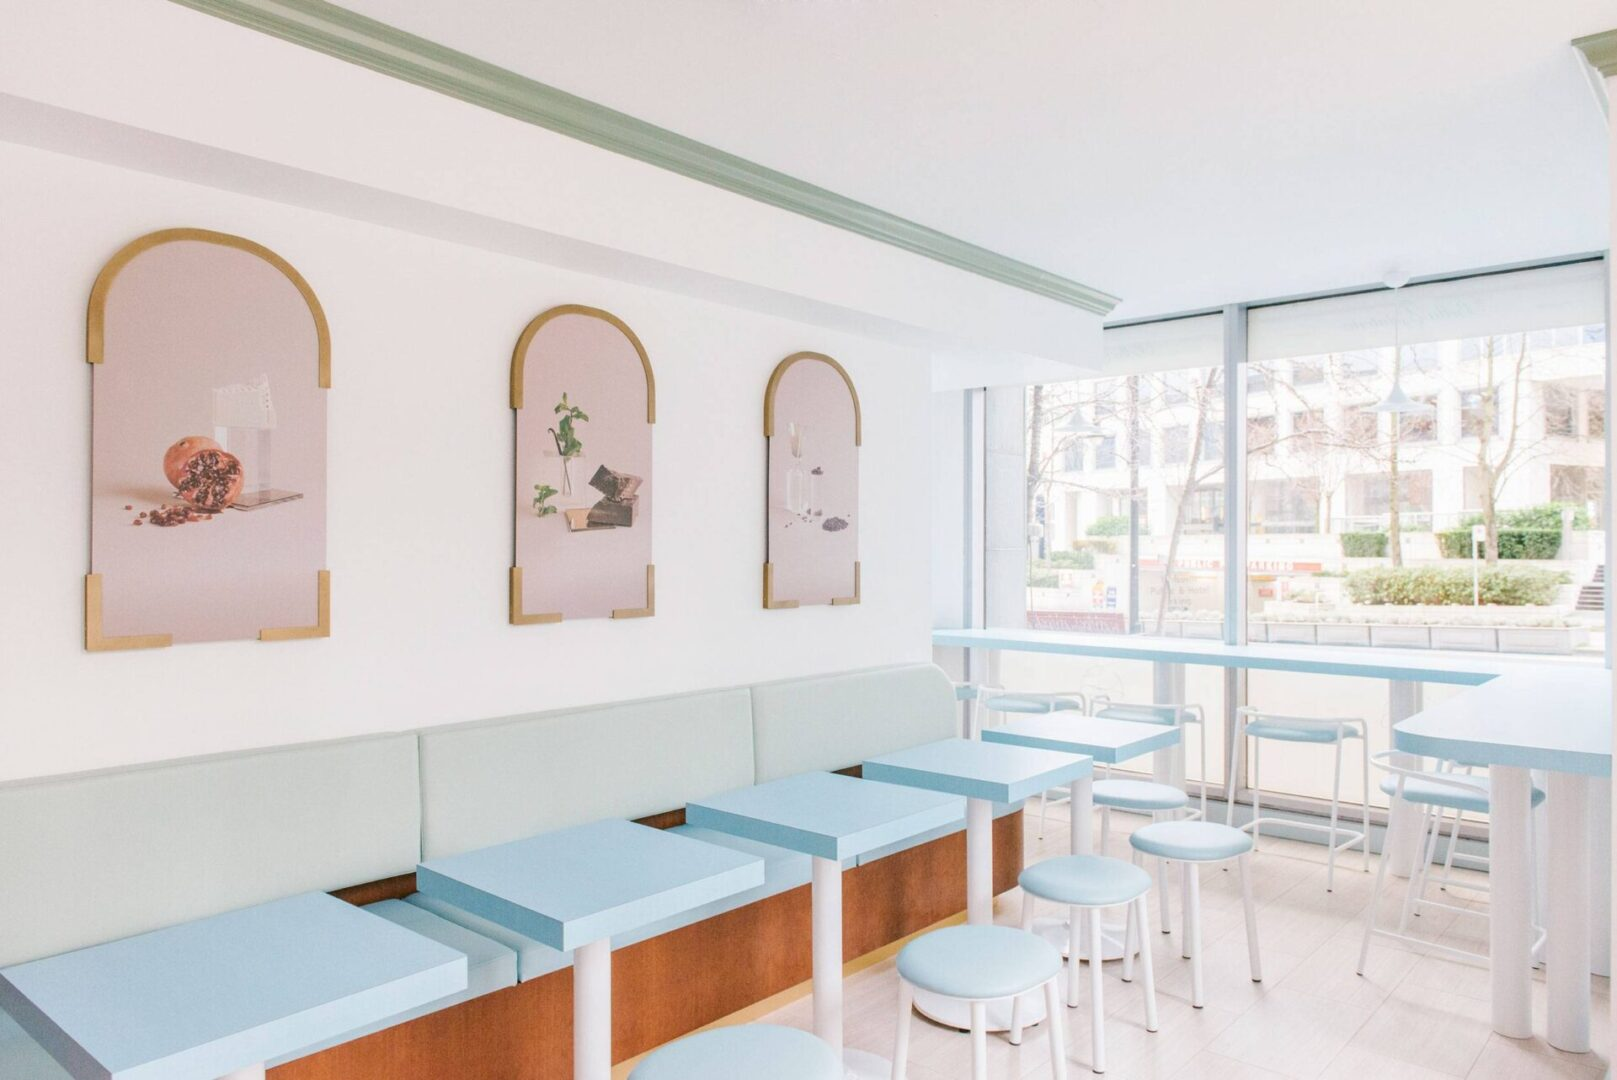 Light Blue Bar Stools and Tables